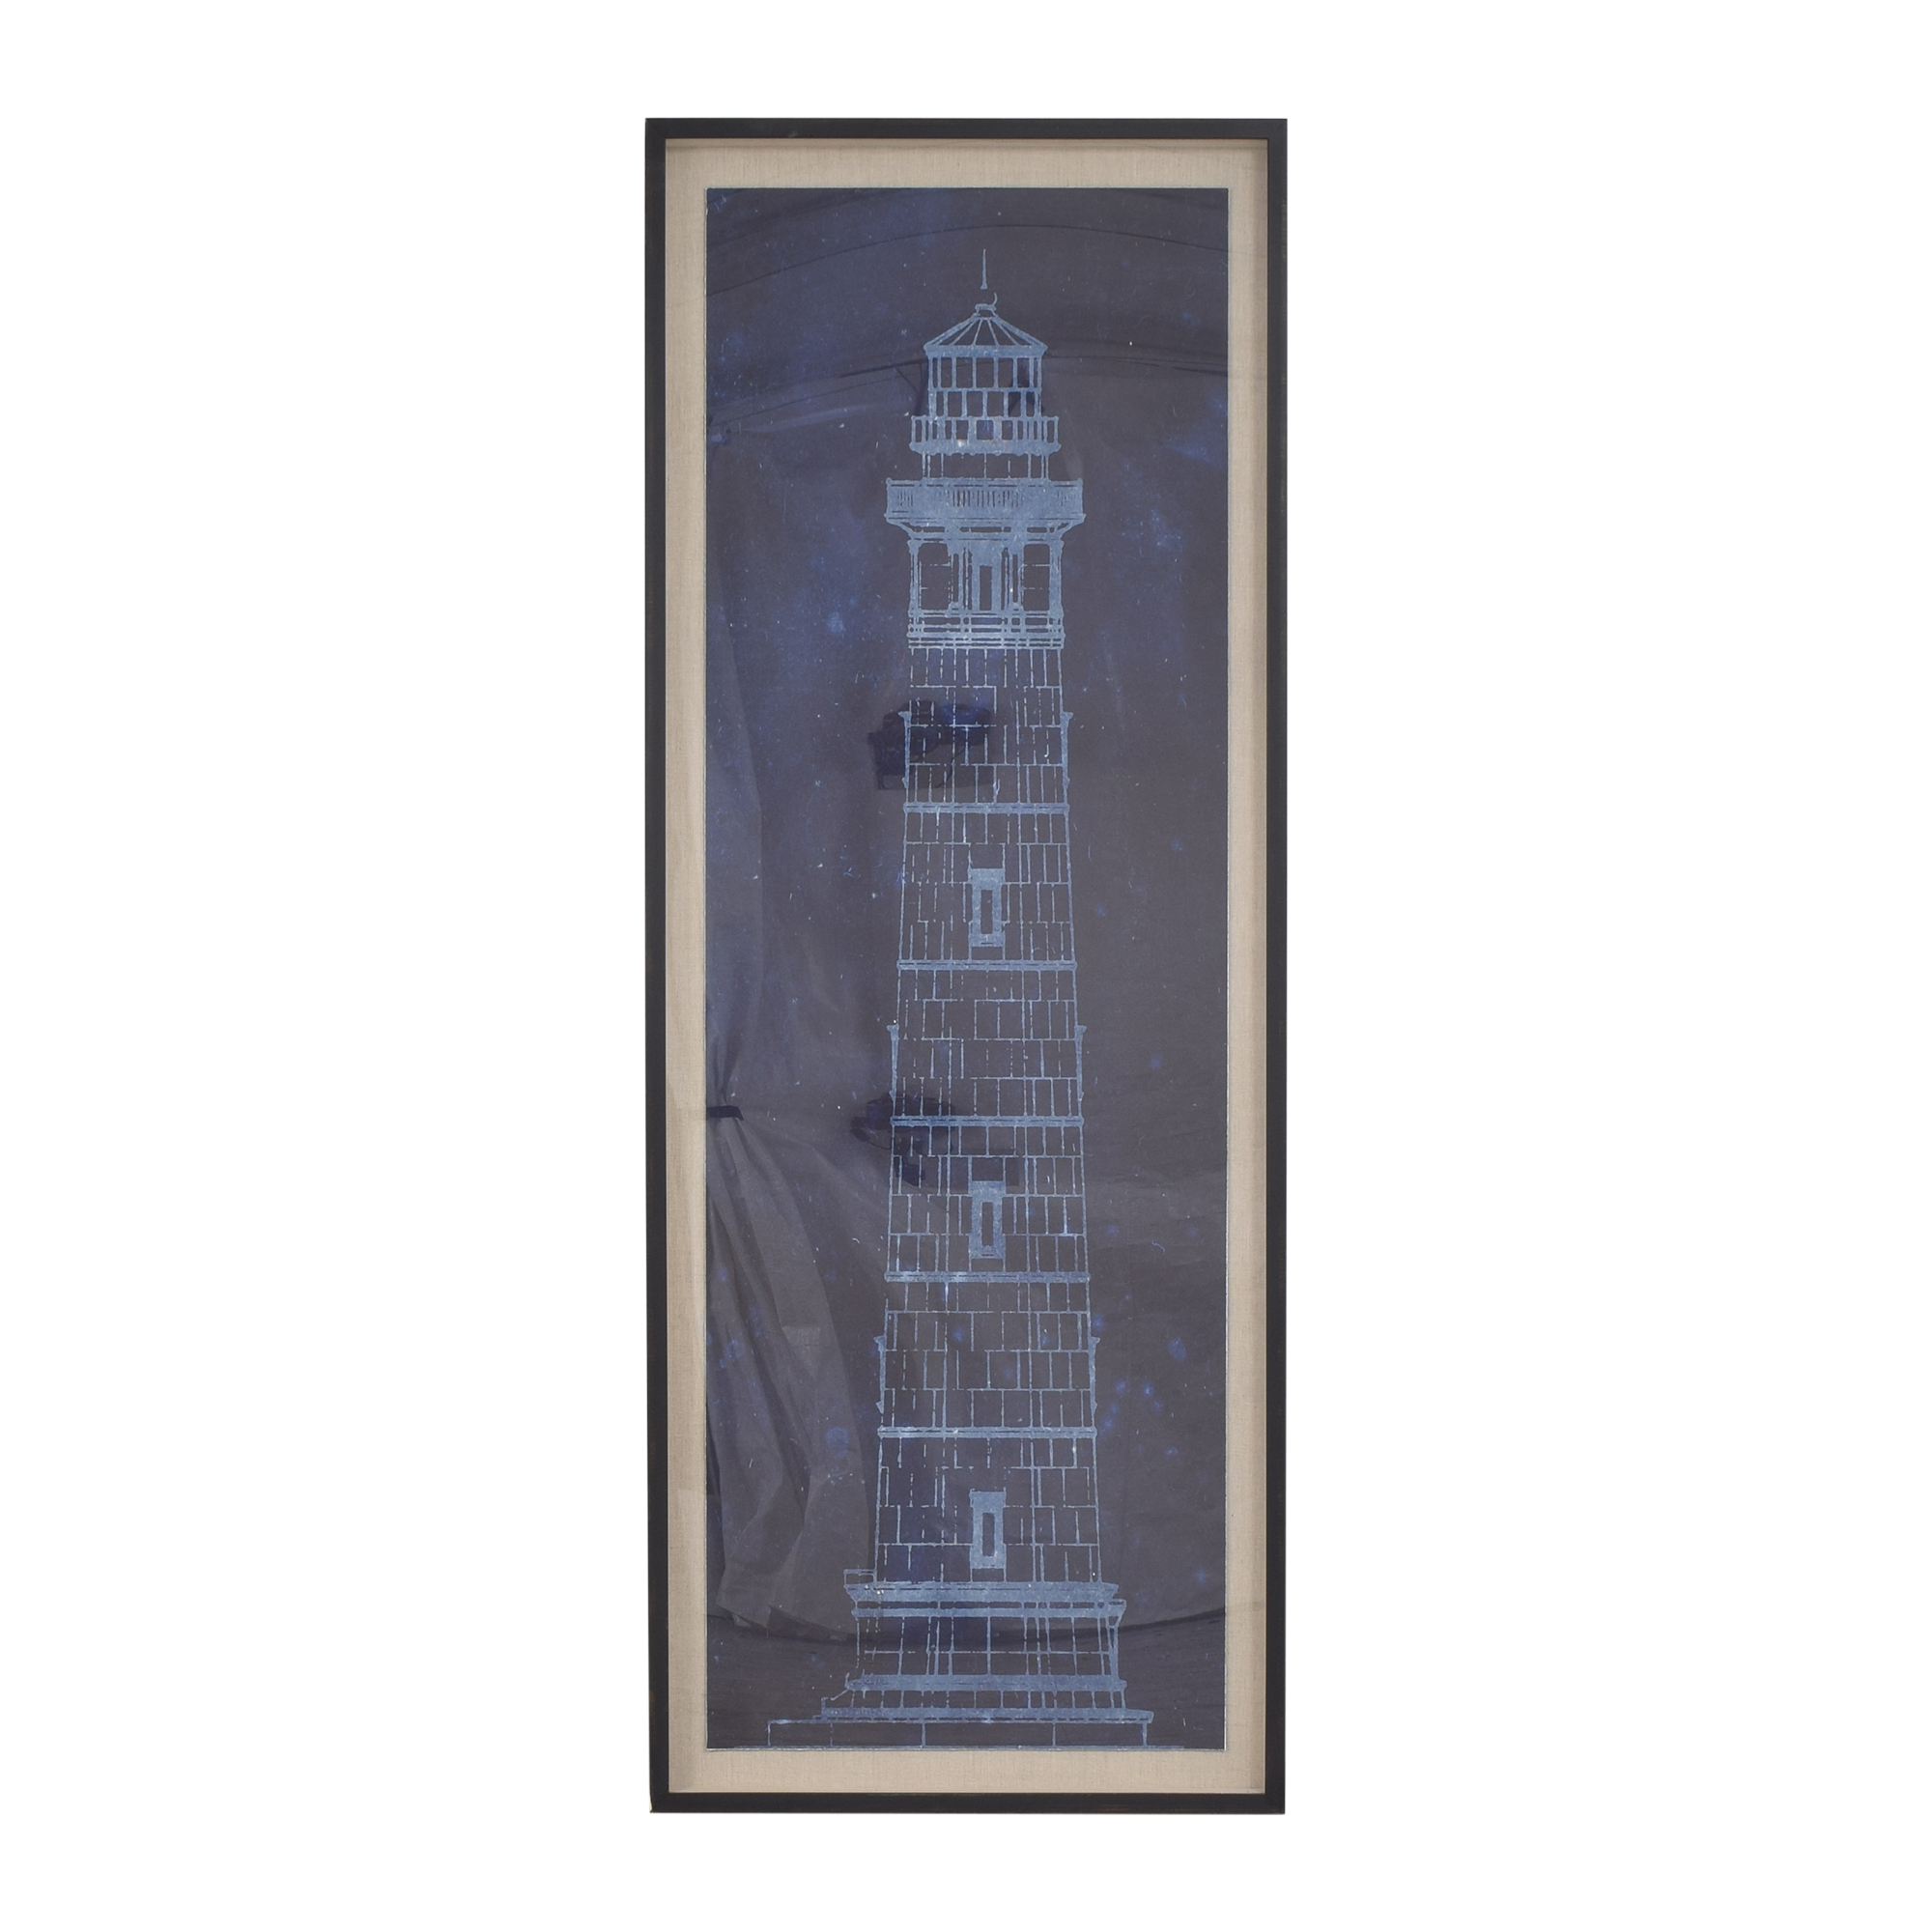 Restoration Hardware Restoration Hardware Cape Henry Lighthouse Blueprint Decor